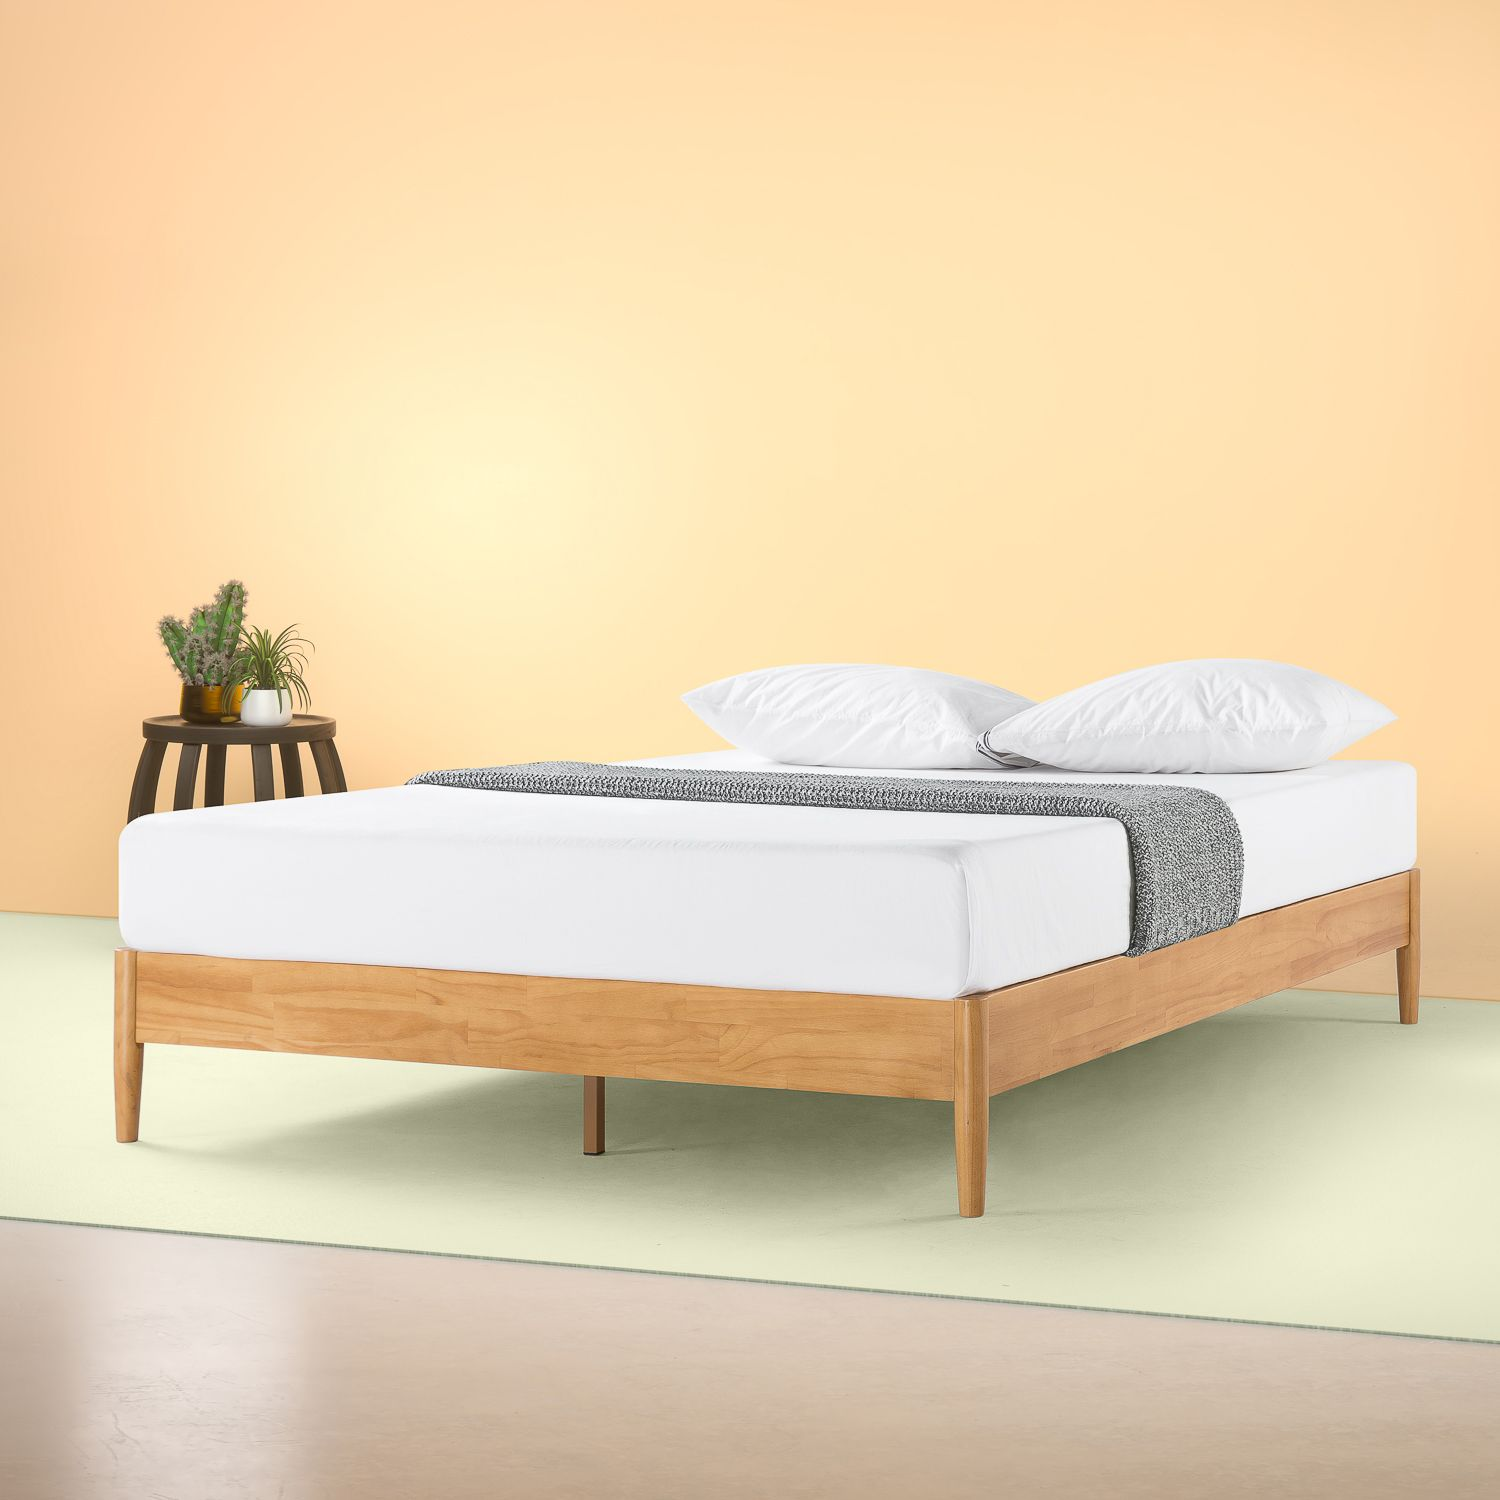 Zinus Amelia 12 Wood Platform Bed Queen Walmart Com In 2020 Wood Platform Bed Platform Bed Frame Wood Platform Bed Frame